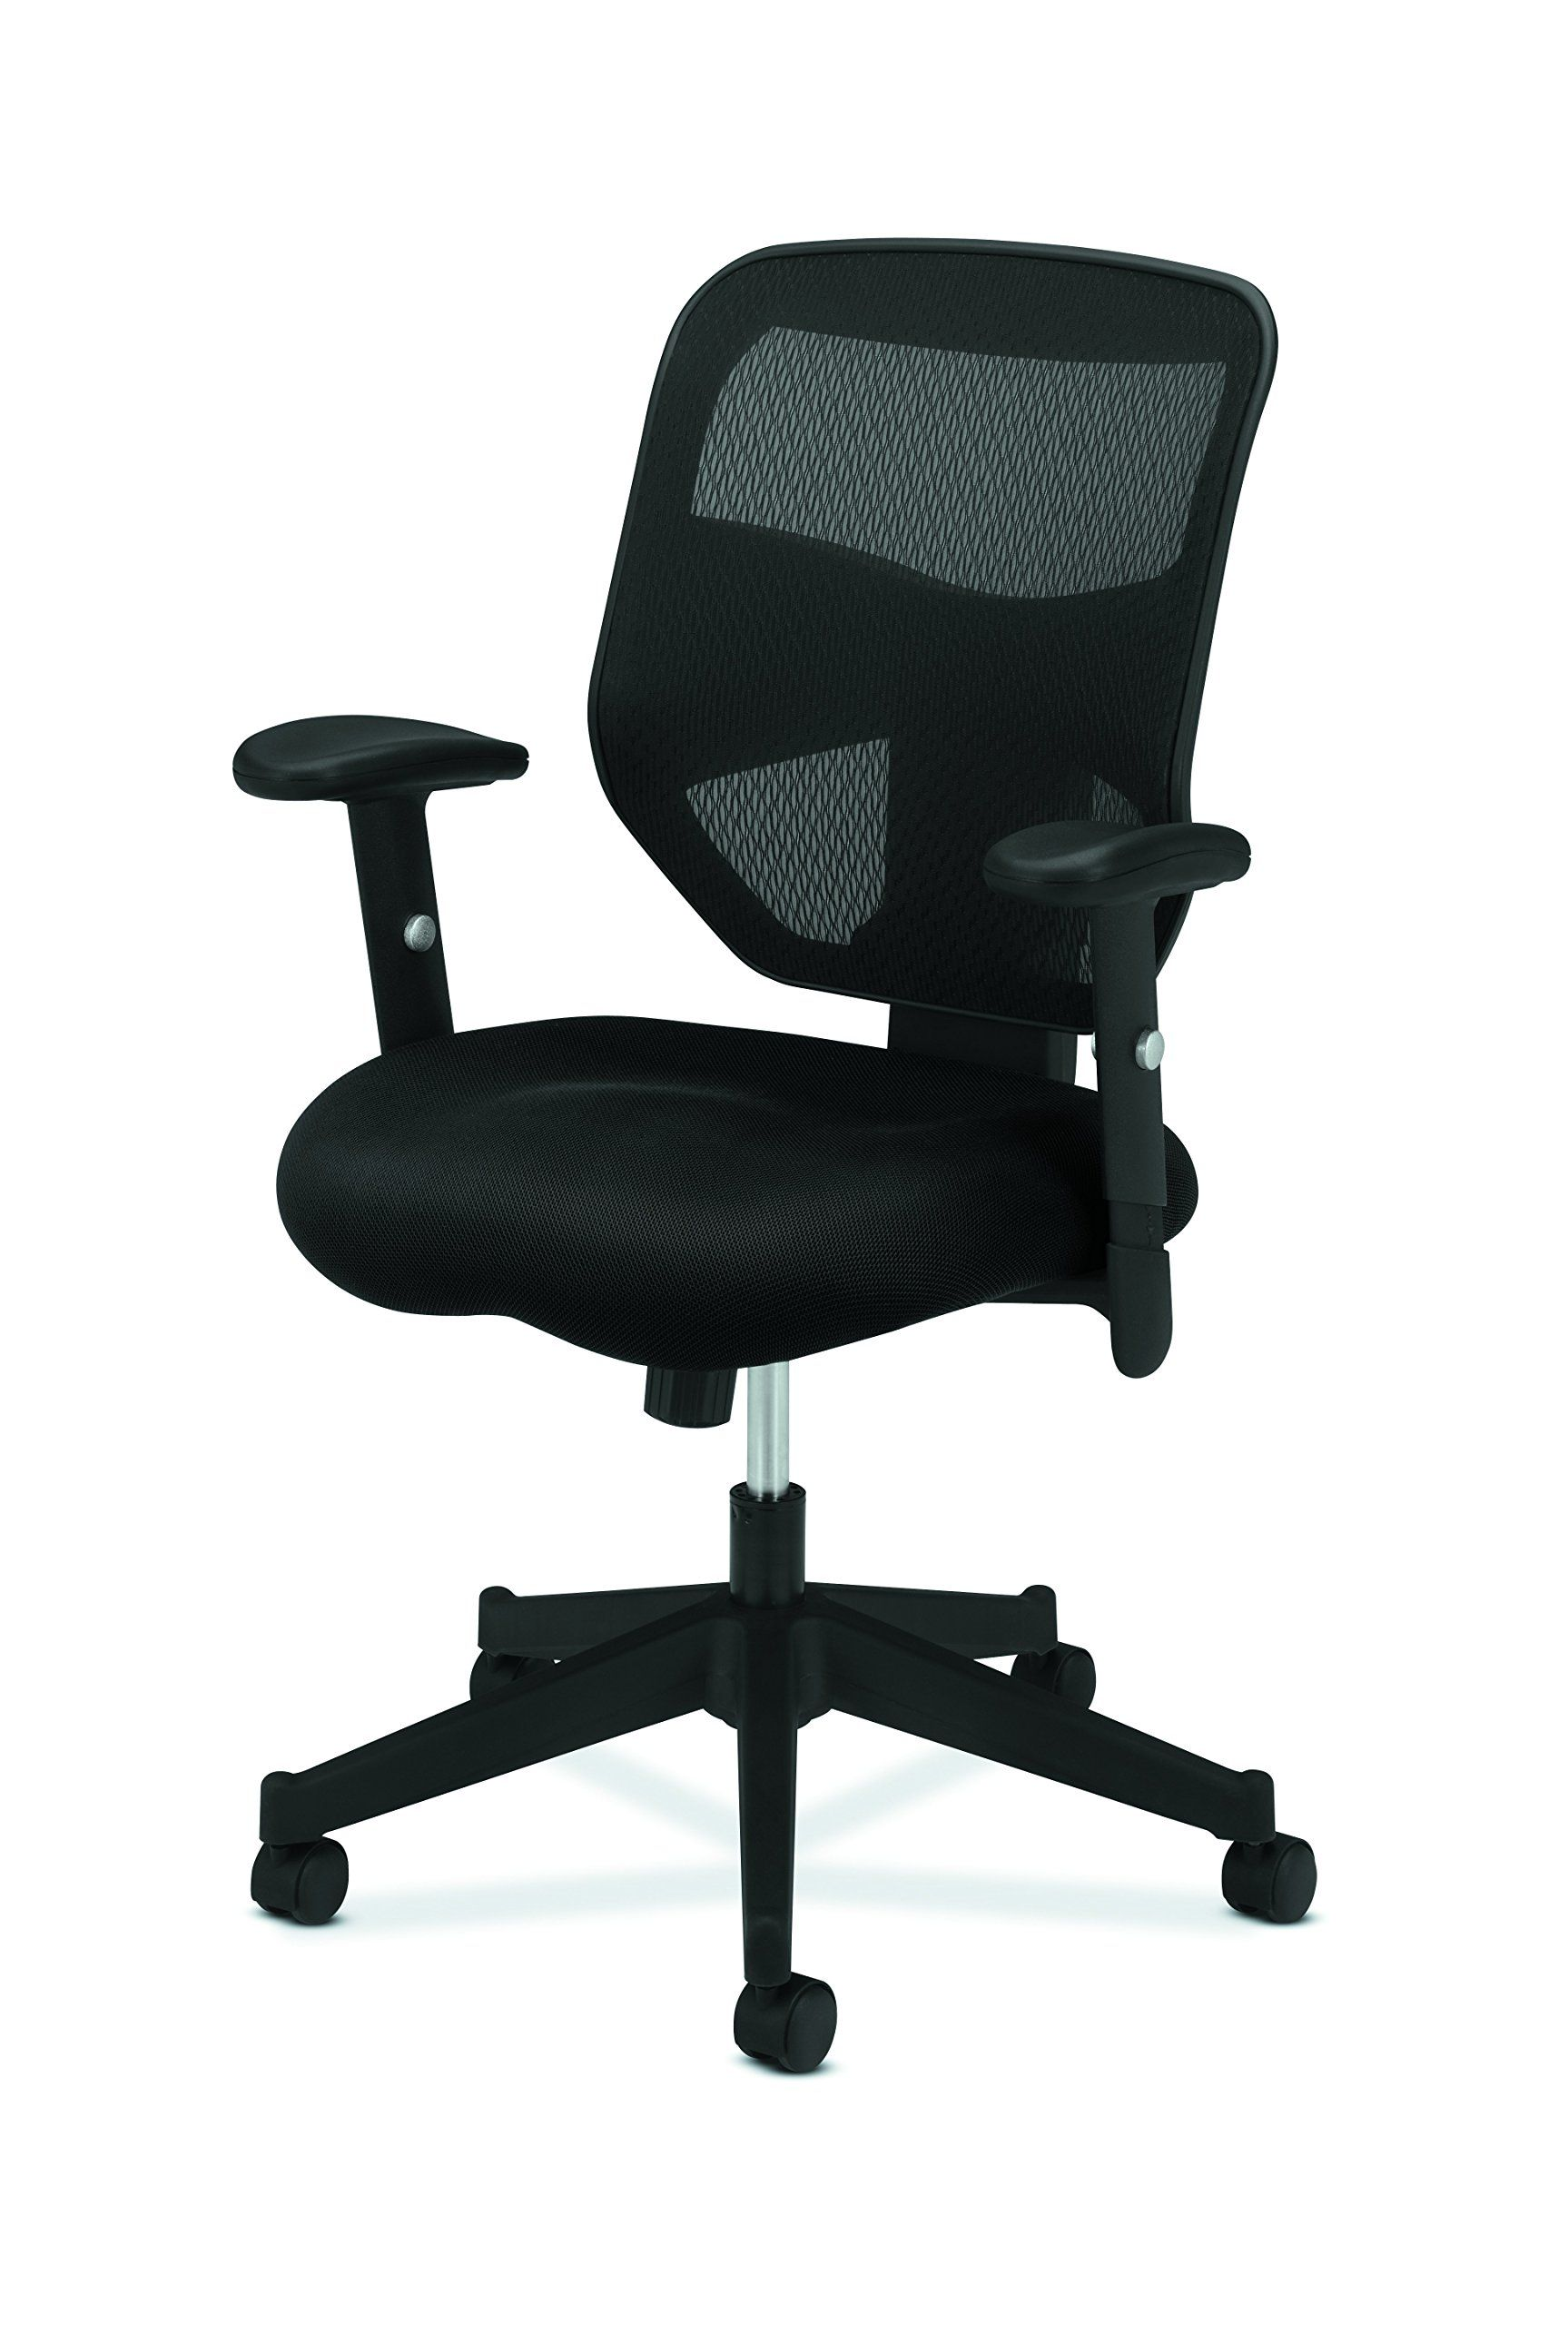 Hon Prominent High Back Work Chair Mesh Computer Chair For Office Desk Black Hvl531 Find Out More About The G Mesh Computer Chair Work Chair Computer Chair